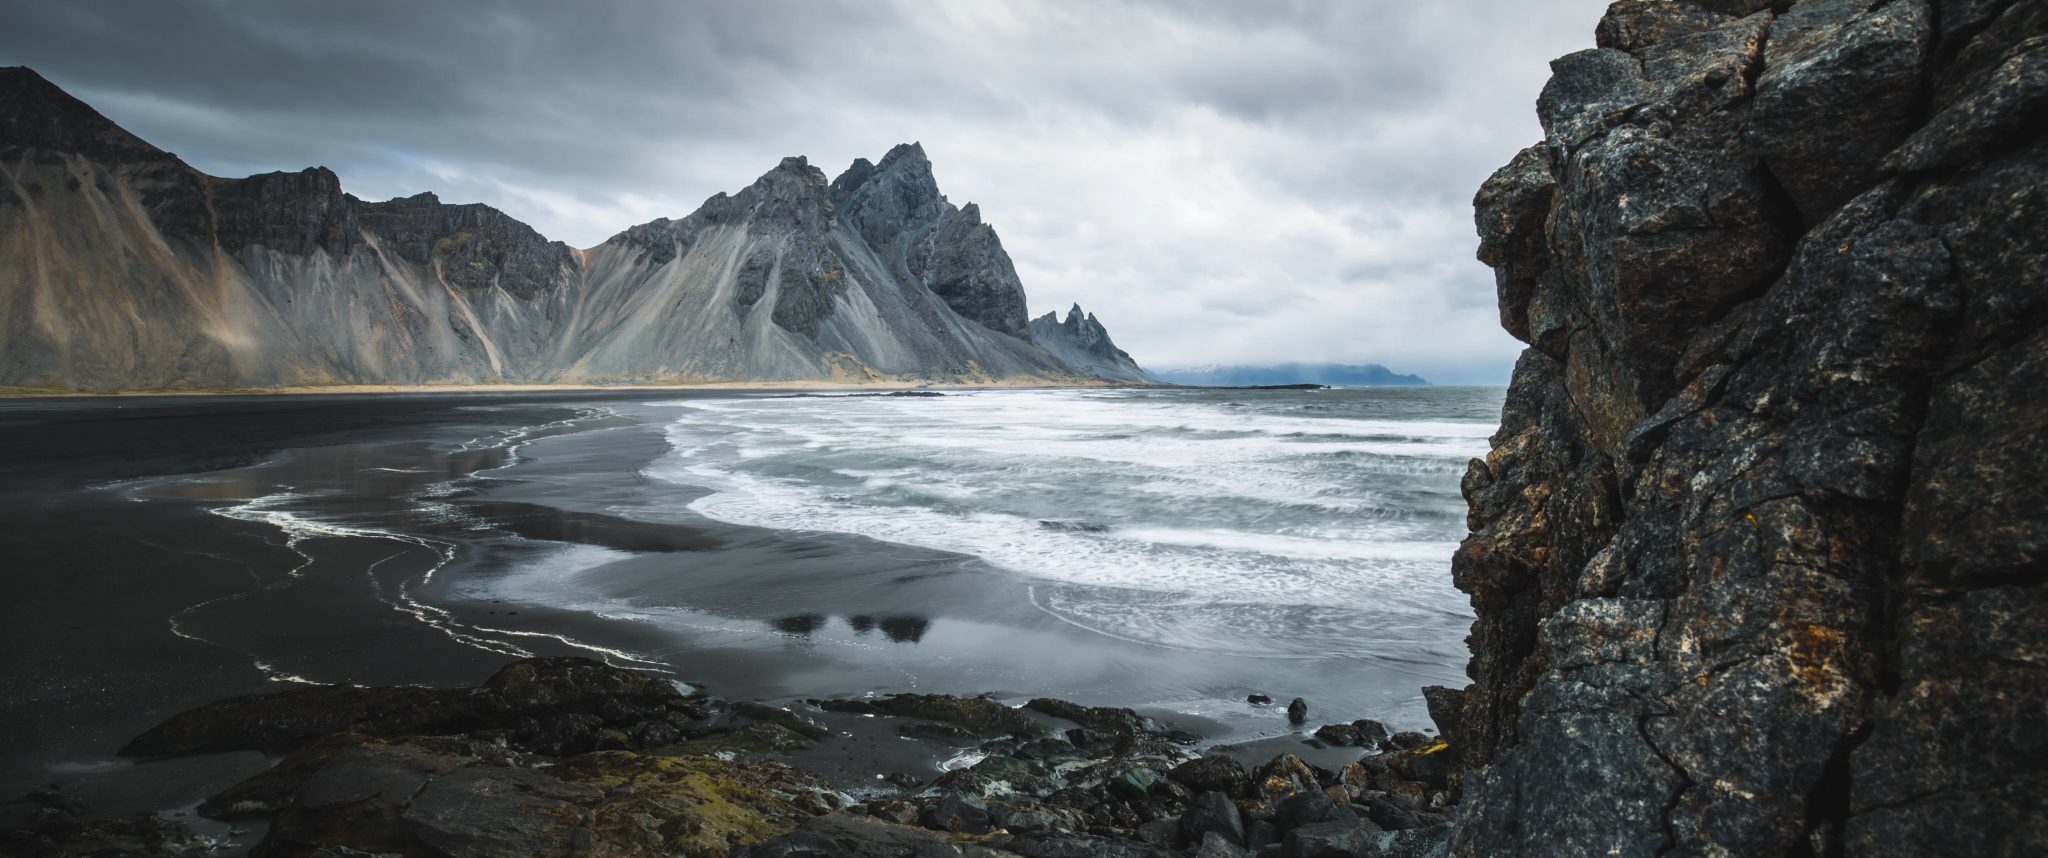 Waves rolling into rough shore in iceland